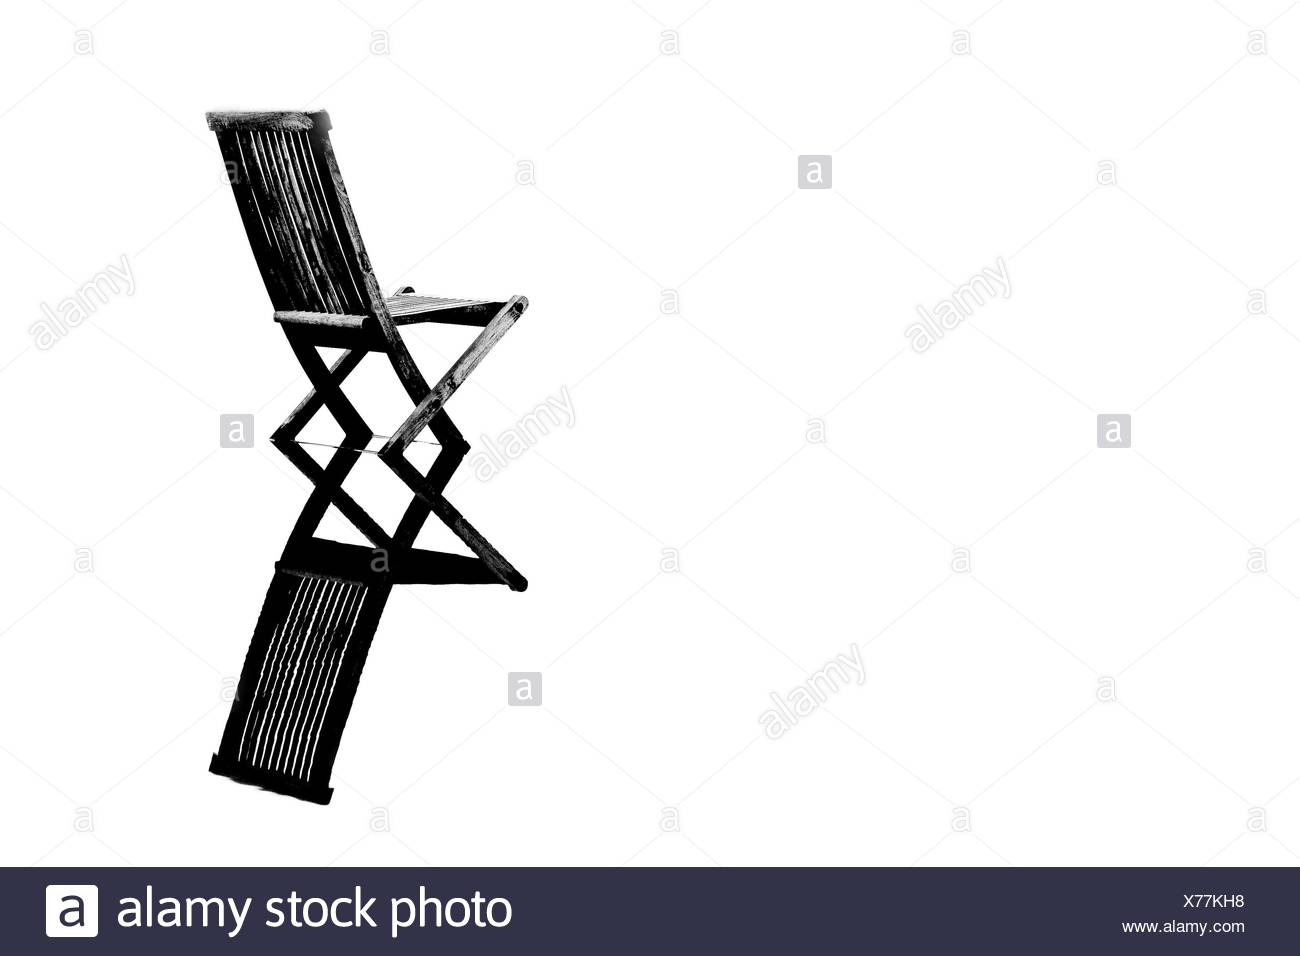 Old chair in calm water - Stock Image